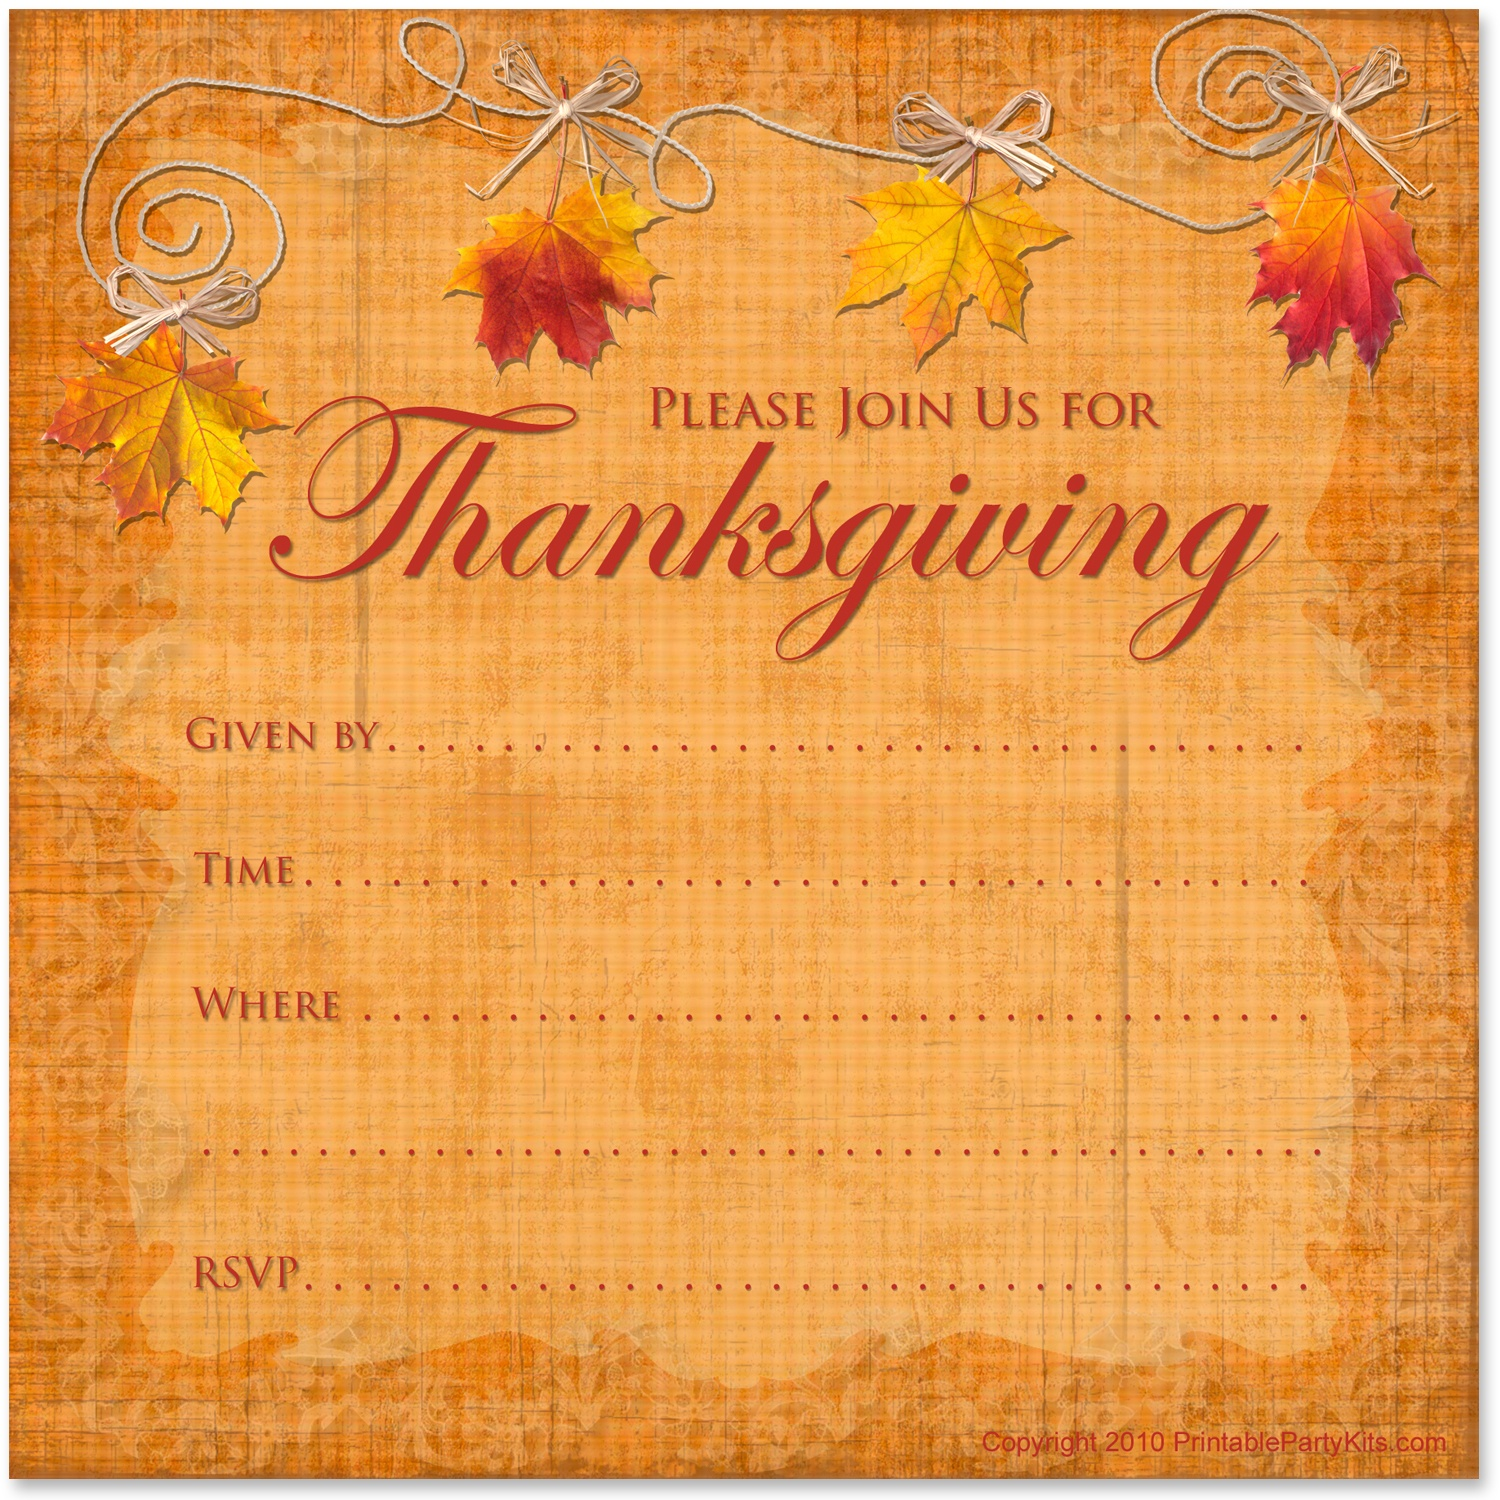 Can't Find Substitution For Tag [Post.body]--> Printable - Free Printable Thanksgiving Invitation Templates